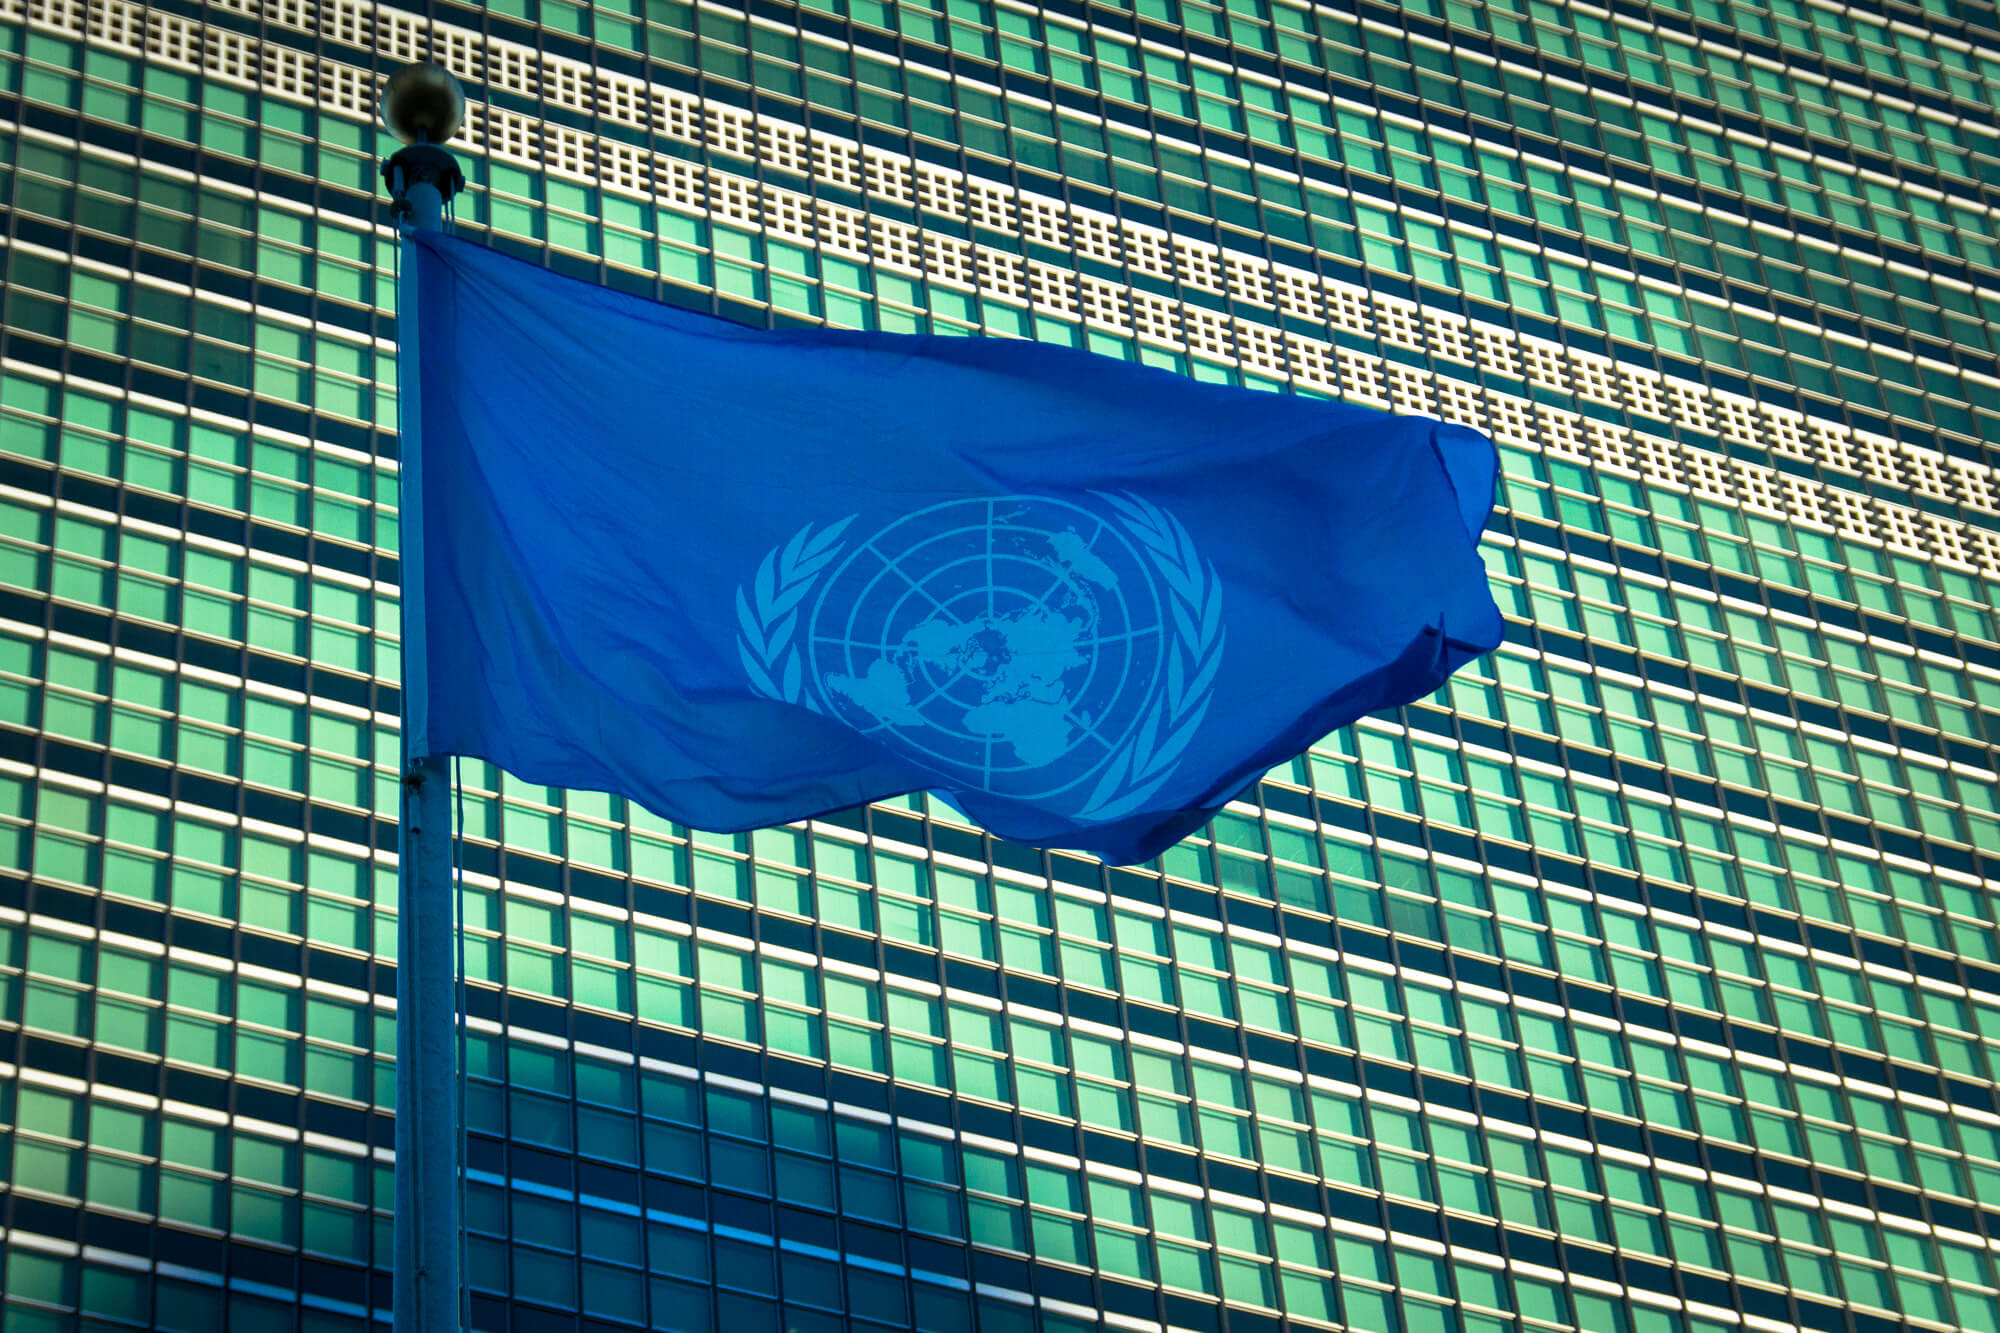 Sahr Muhammedally addresses a UN committee on explosive weapons in cities